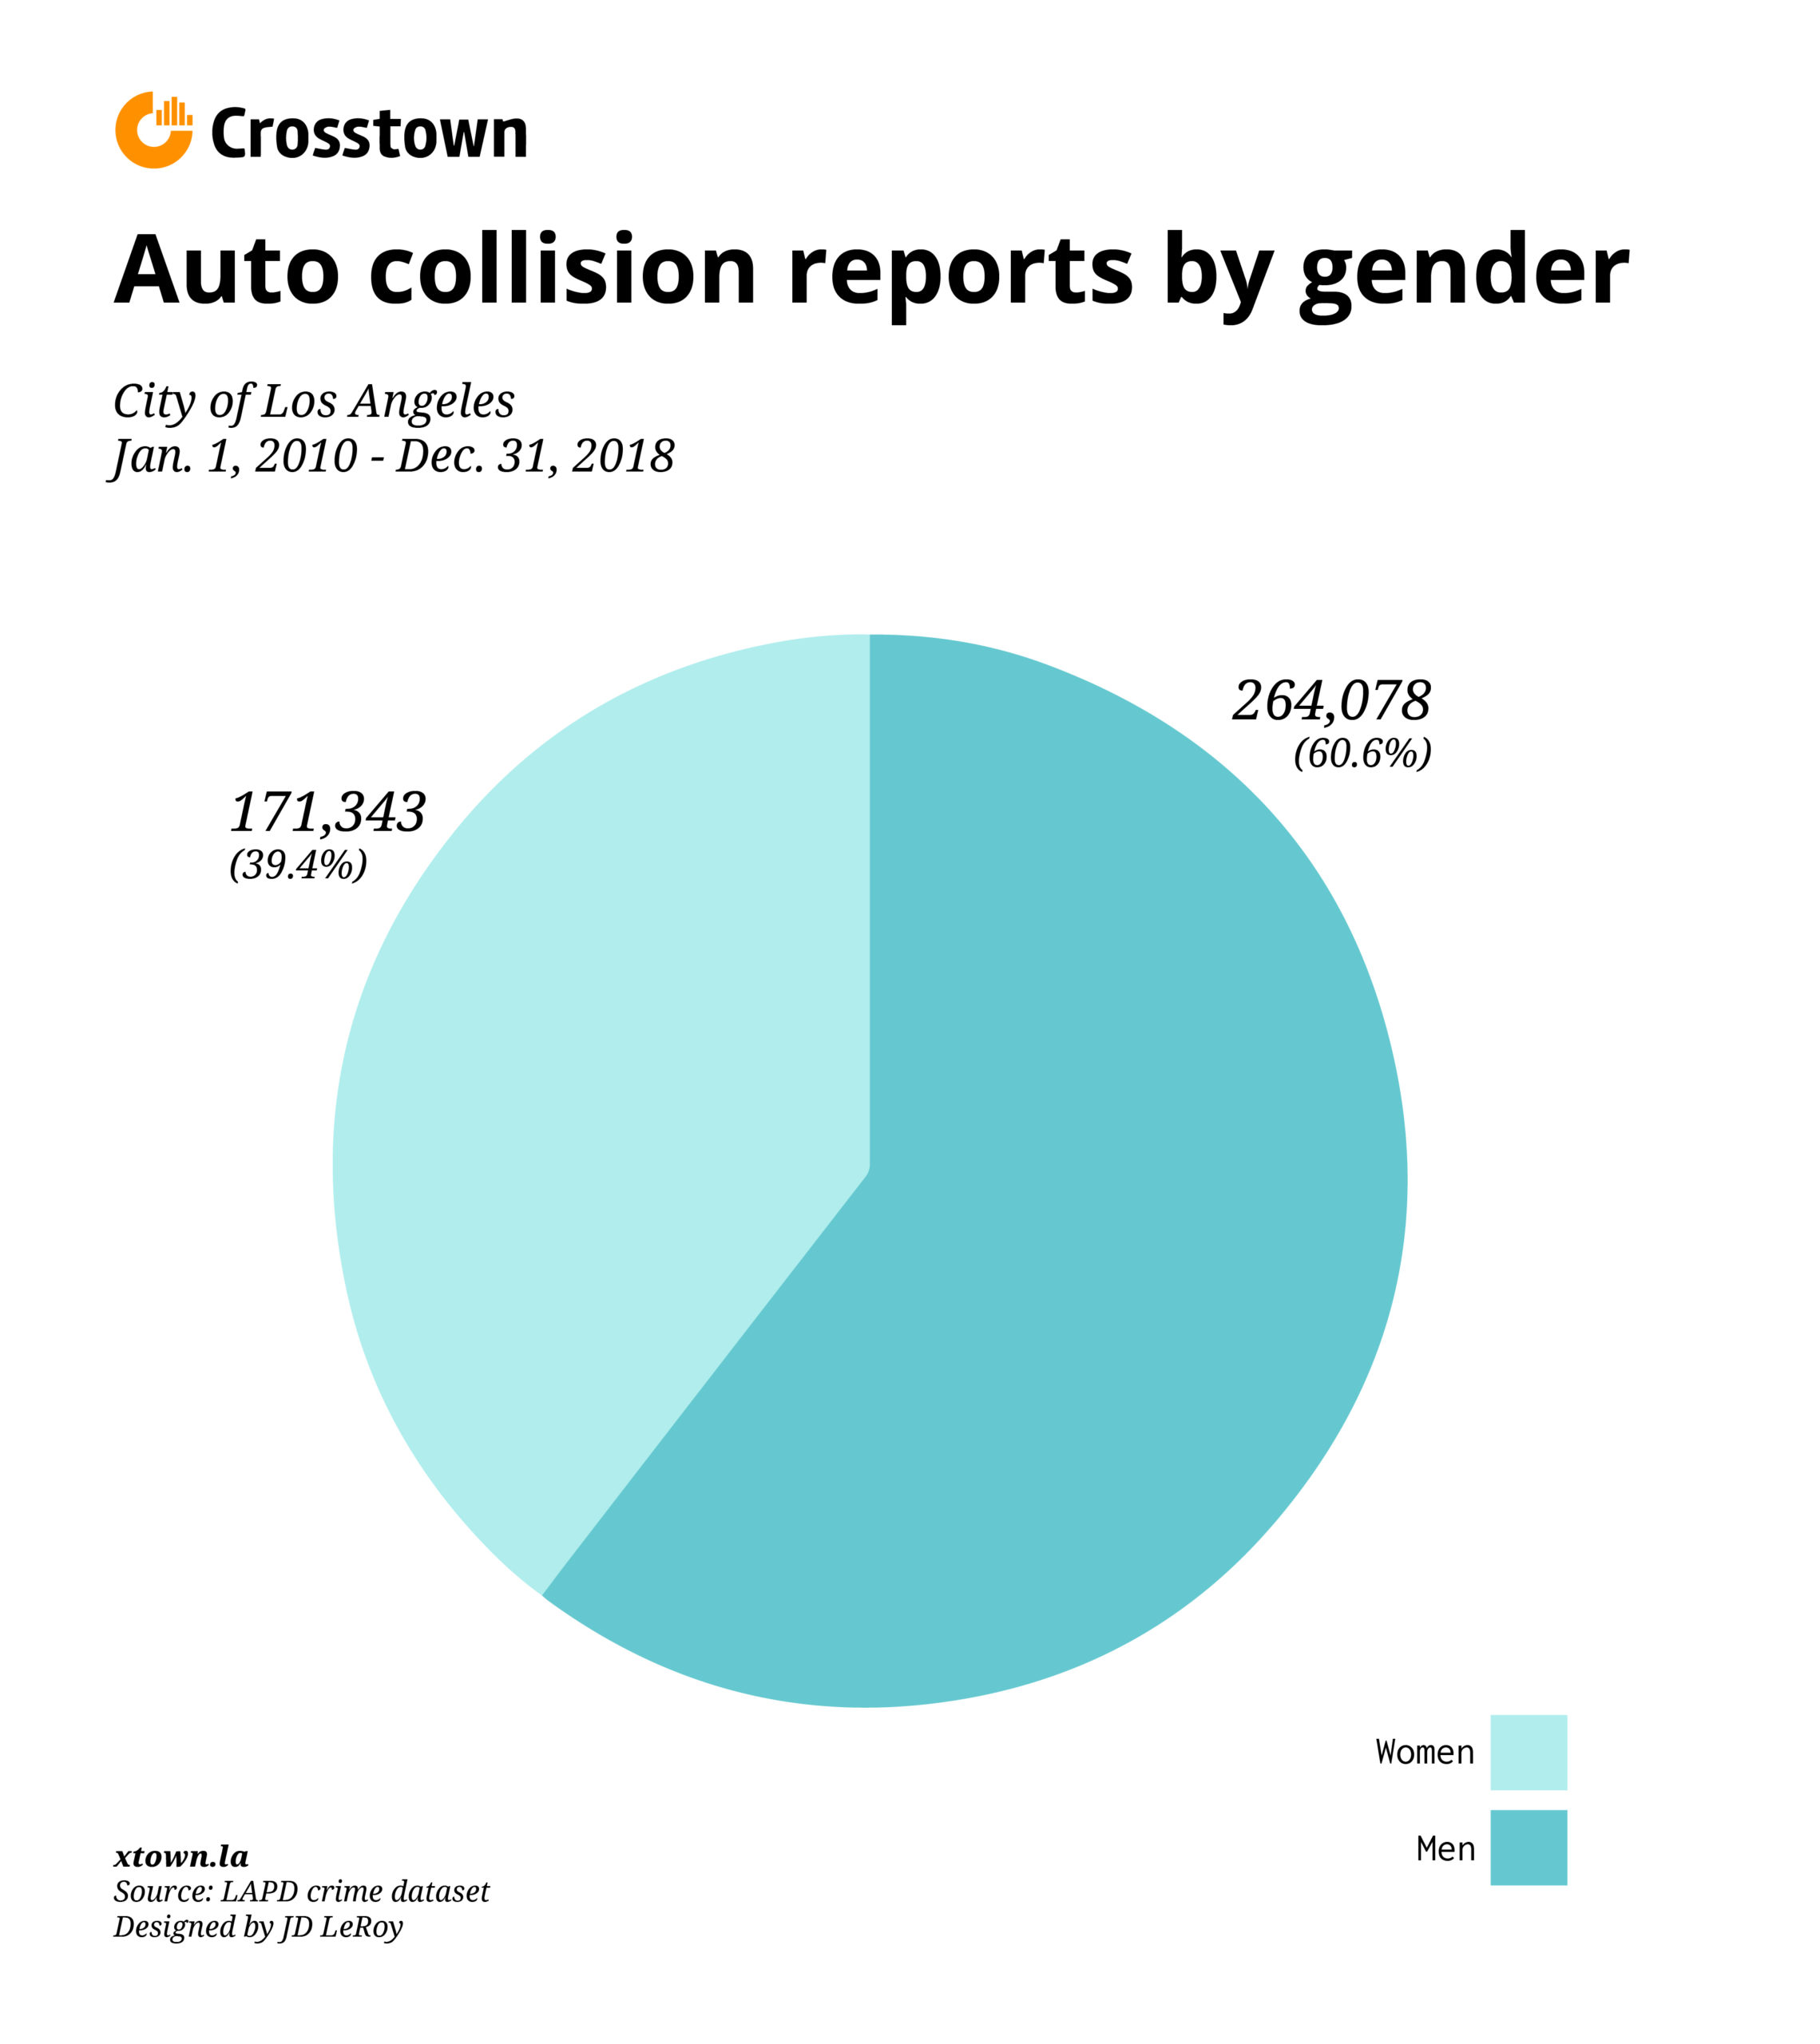 men cause 60 percent of car accidents in LA pie chart